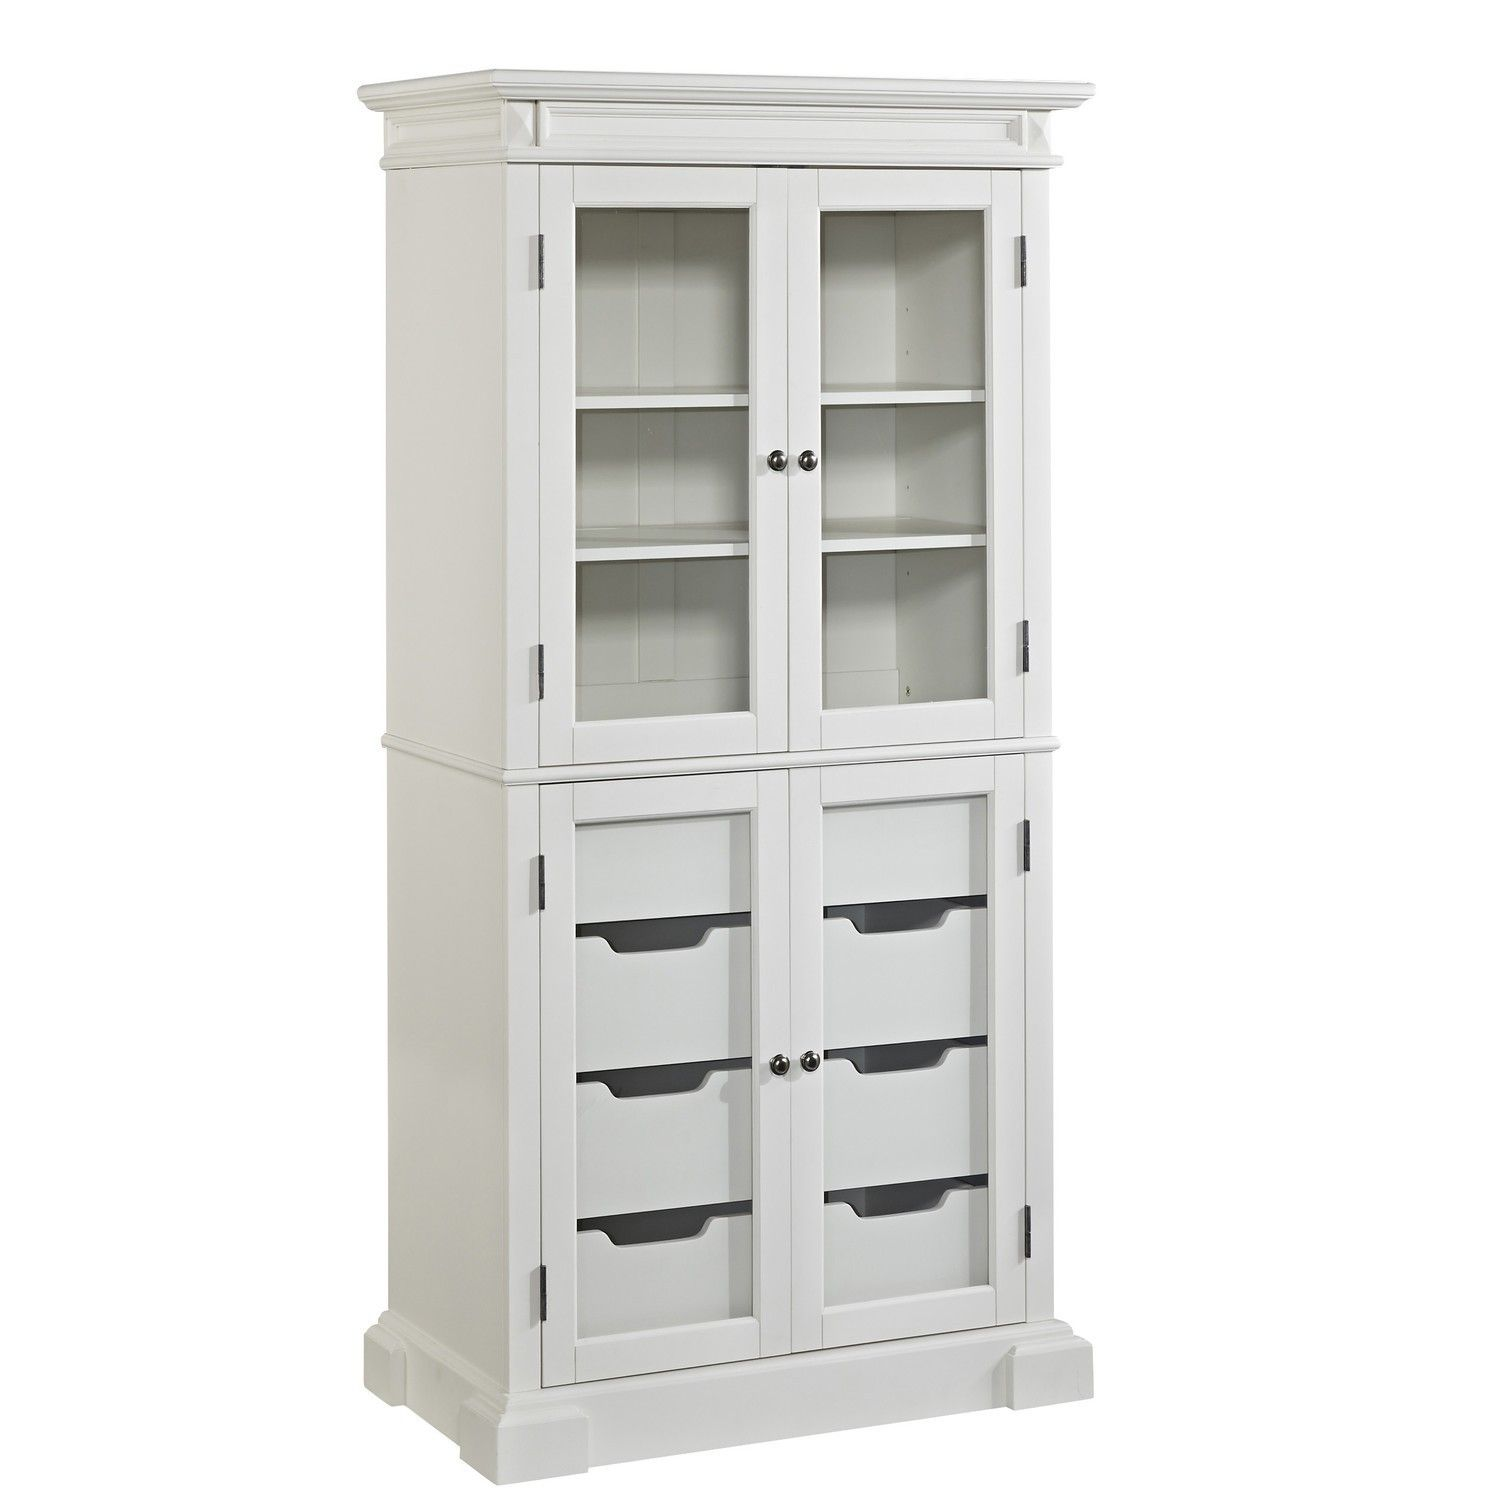 Unpolished Maple Wood Portable Island With And Double Drawers White Storage Cabinets Kitchen Cabinet Storage Pantry Furniture